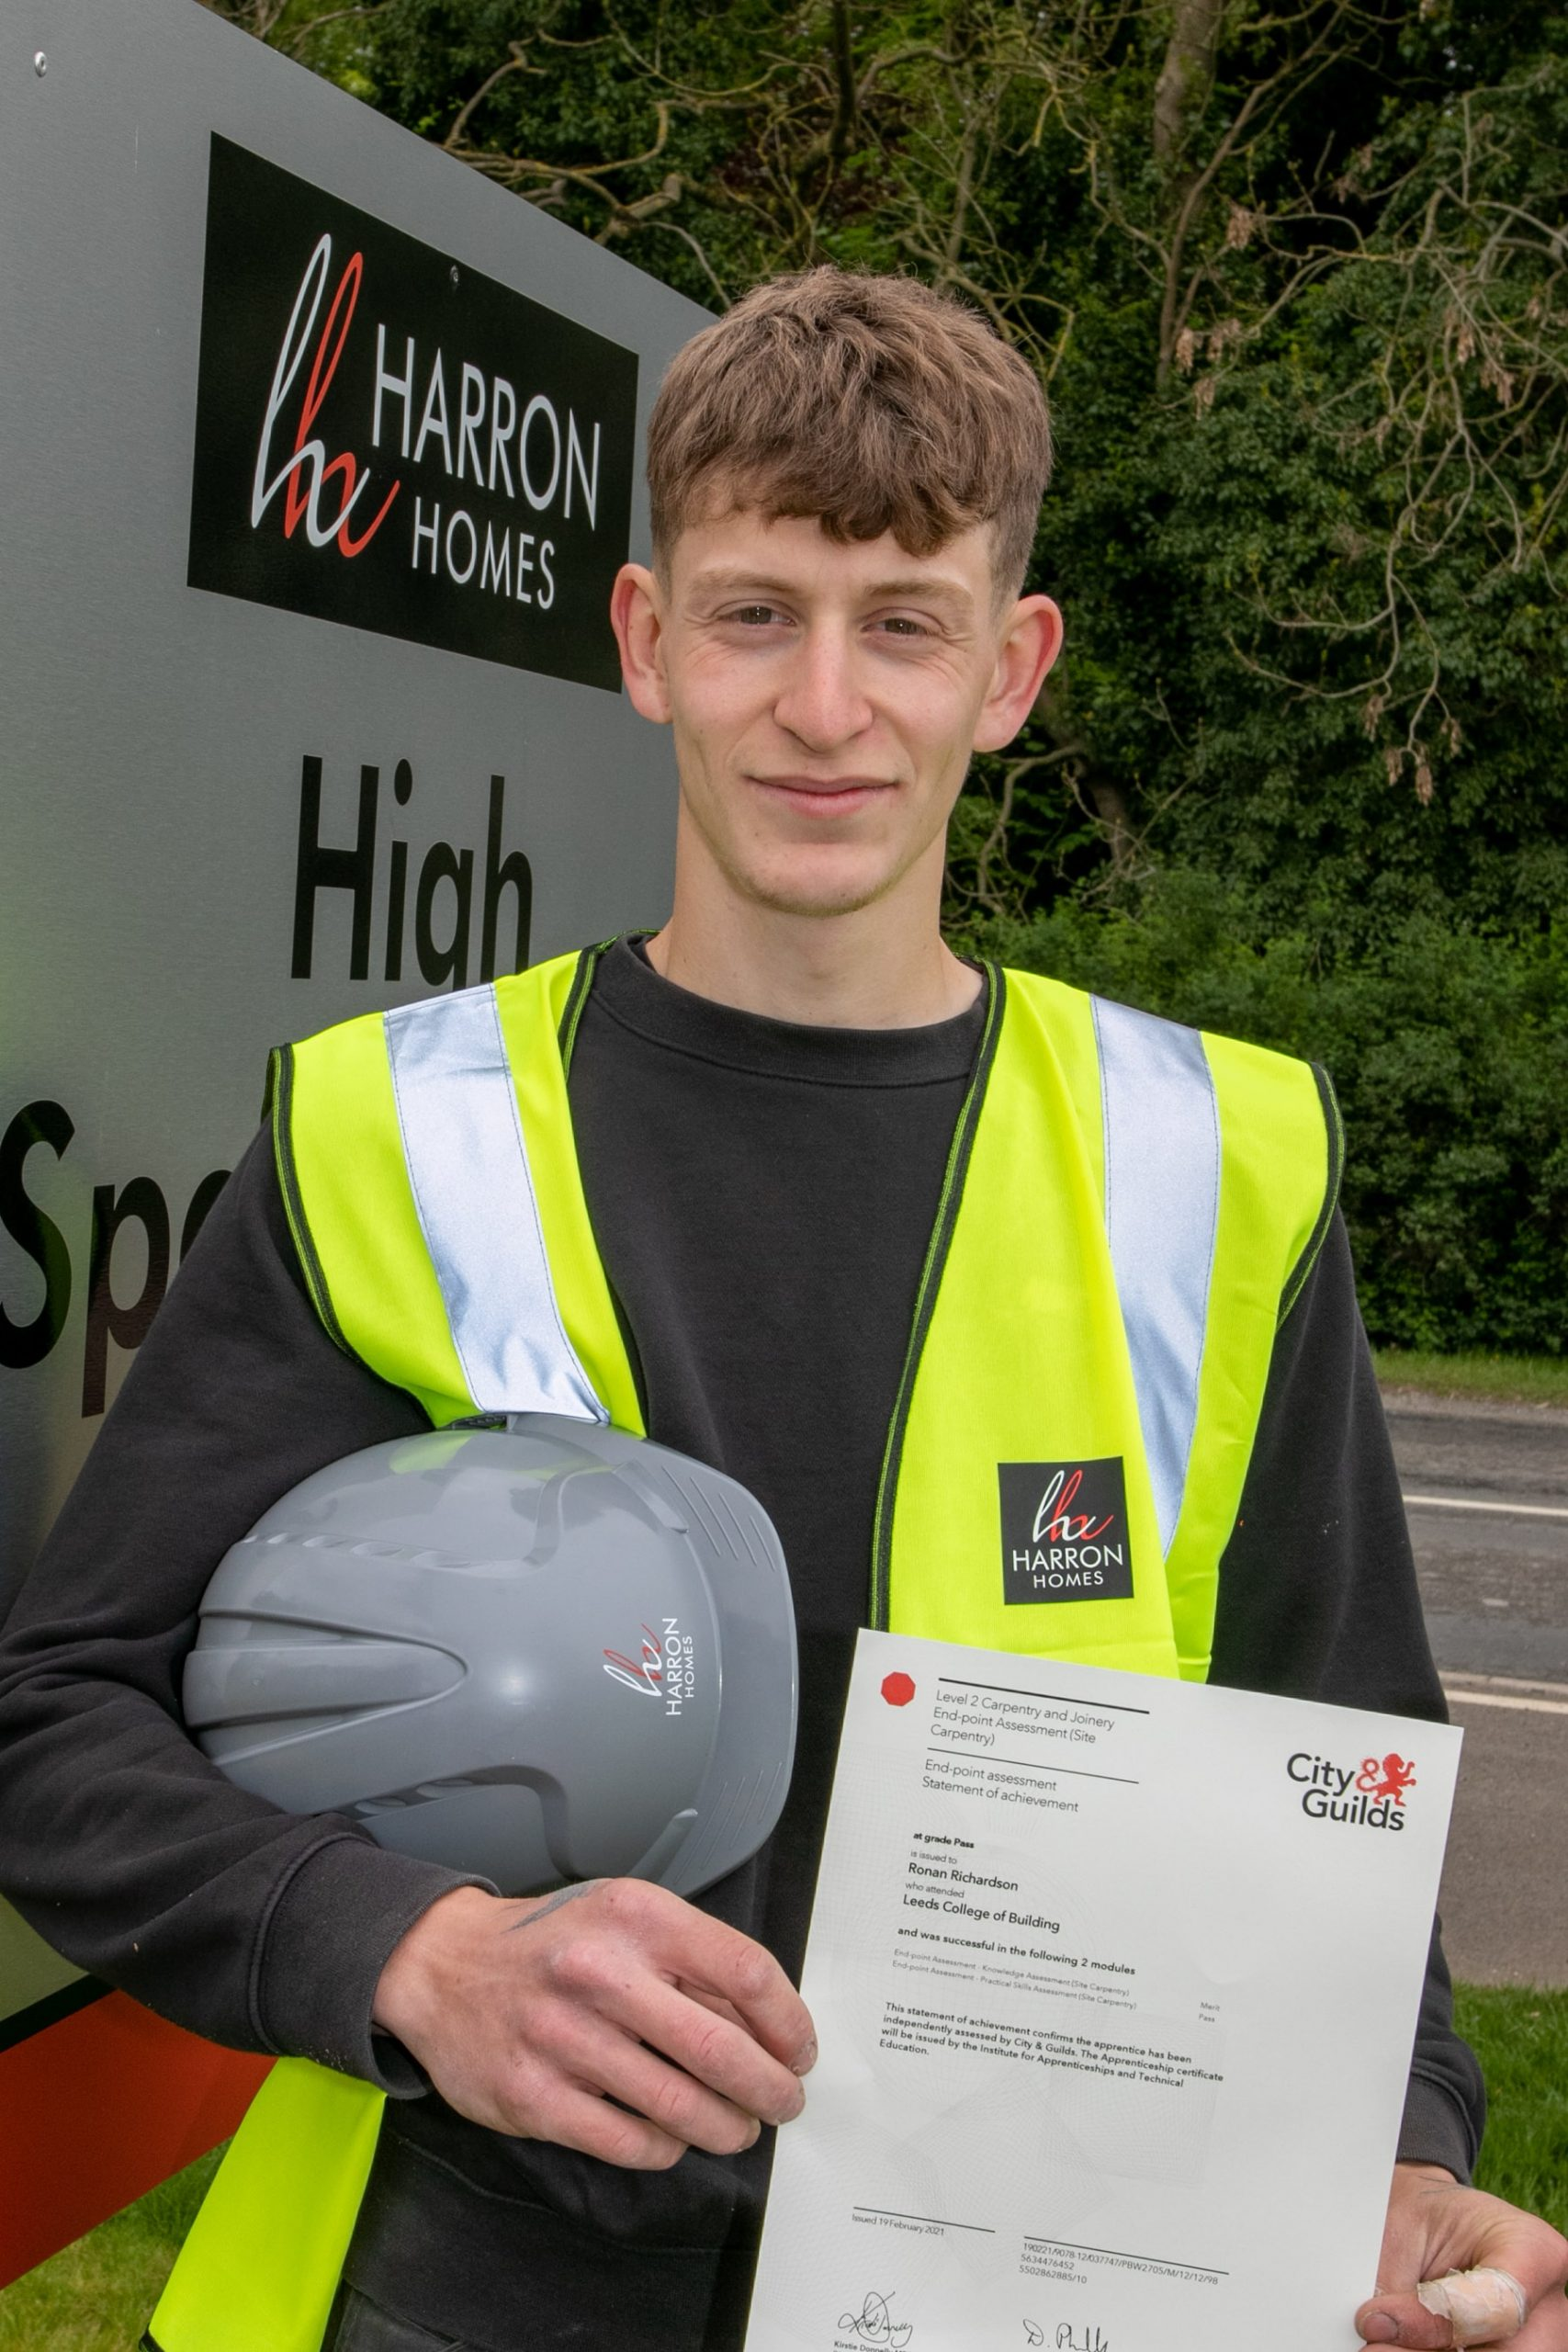 Harron Homes Yorkshire supports apprentice ambitions